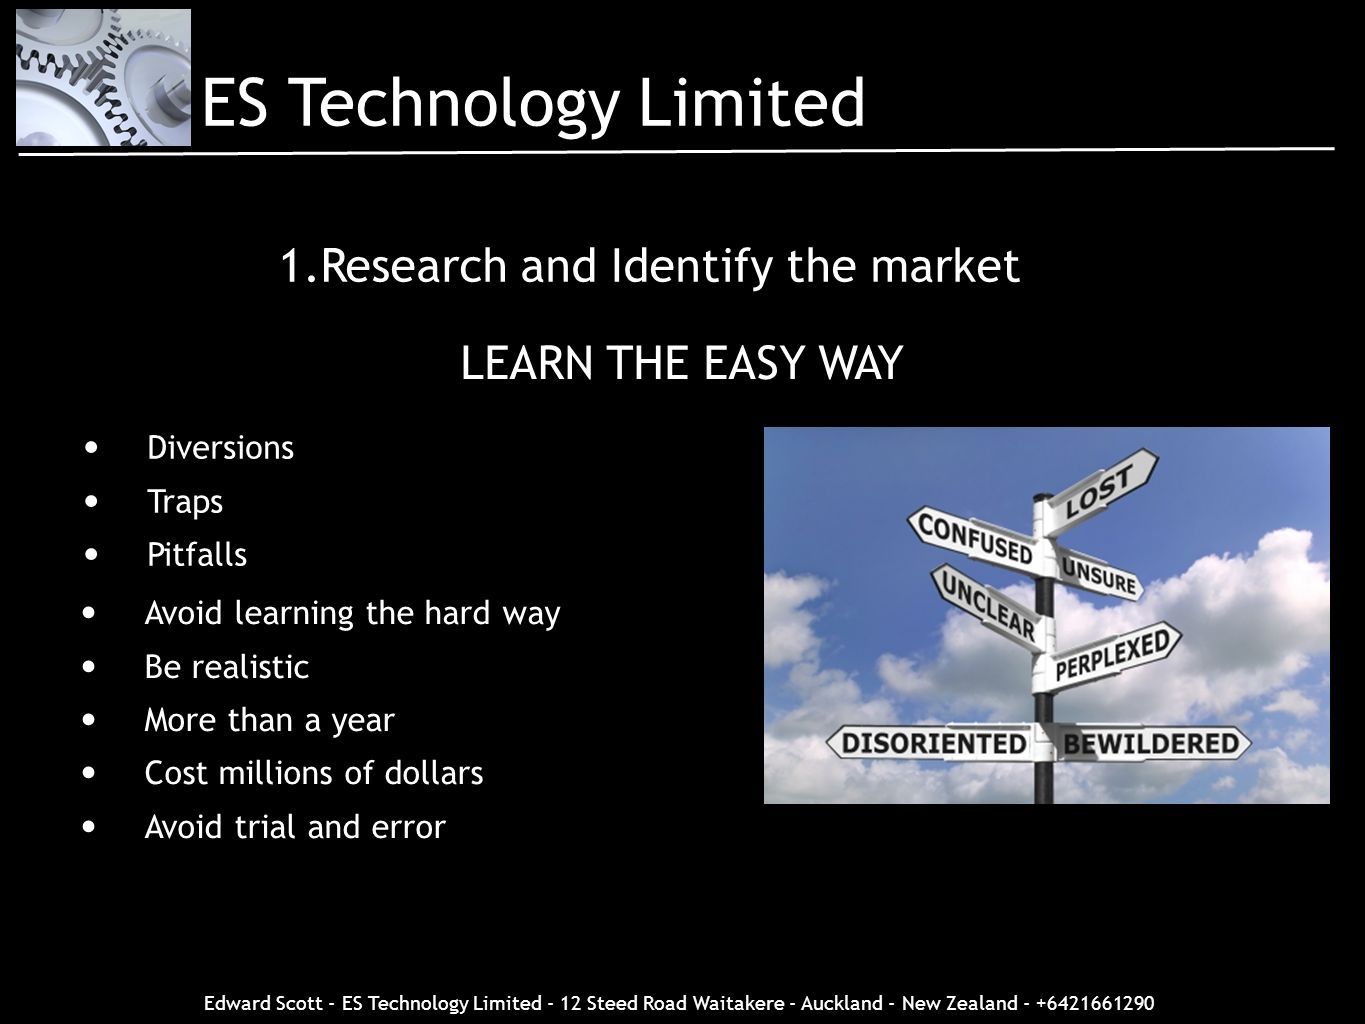 Edward Scott - ES Technology Limited - 12 Steed Road Waitakere - Auckland - New Zealand - +6421661290 1.Research and Identify the market Diversions Tr